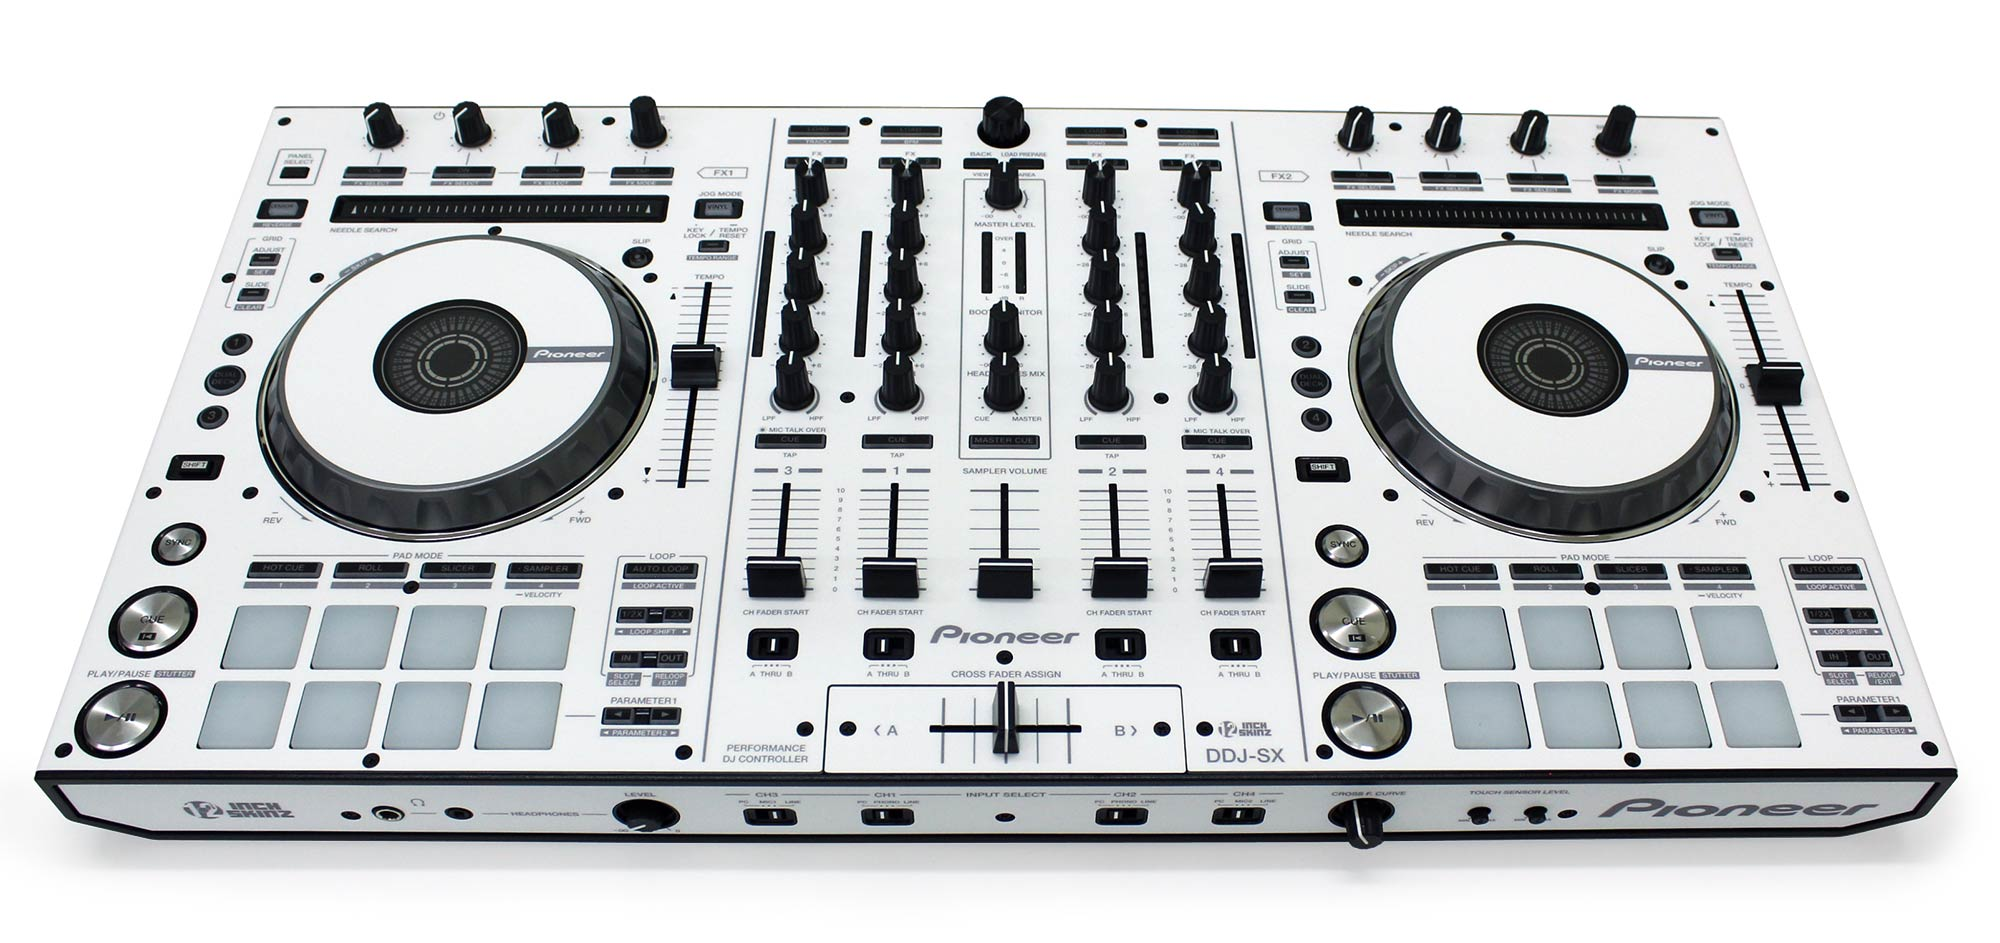 PIONEER DDJ-SX2 Custom White Skinned Serato DJ Audio Video